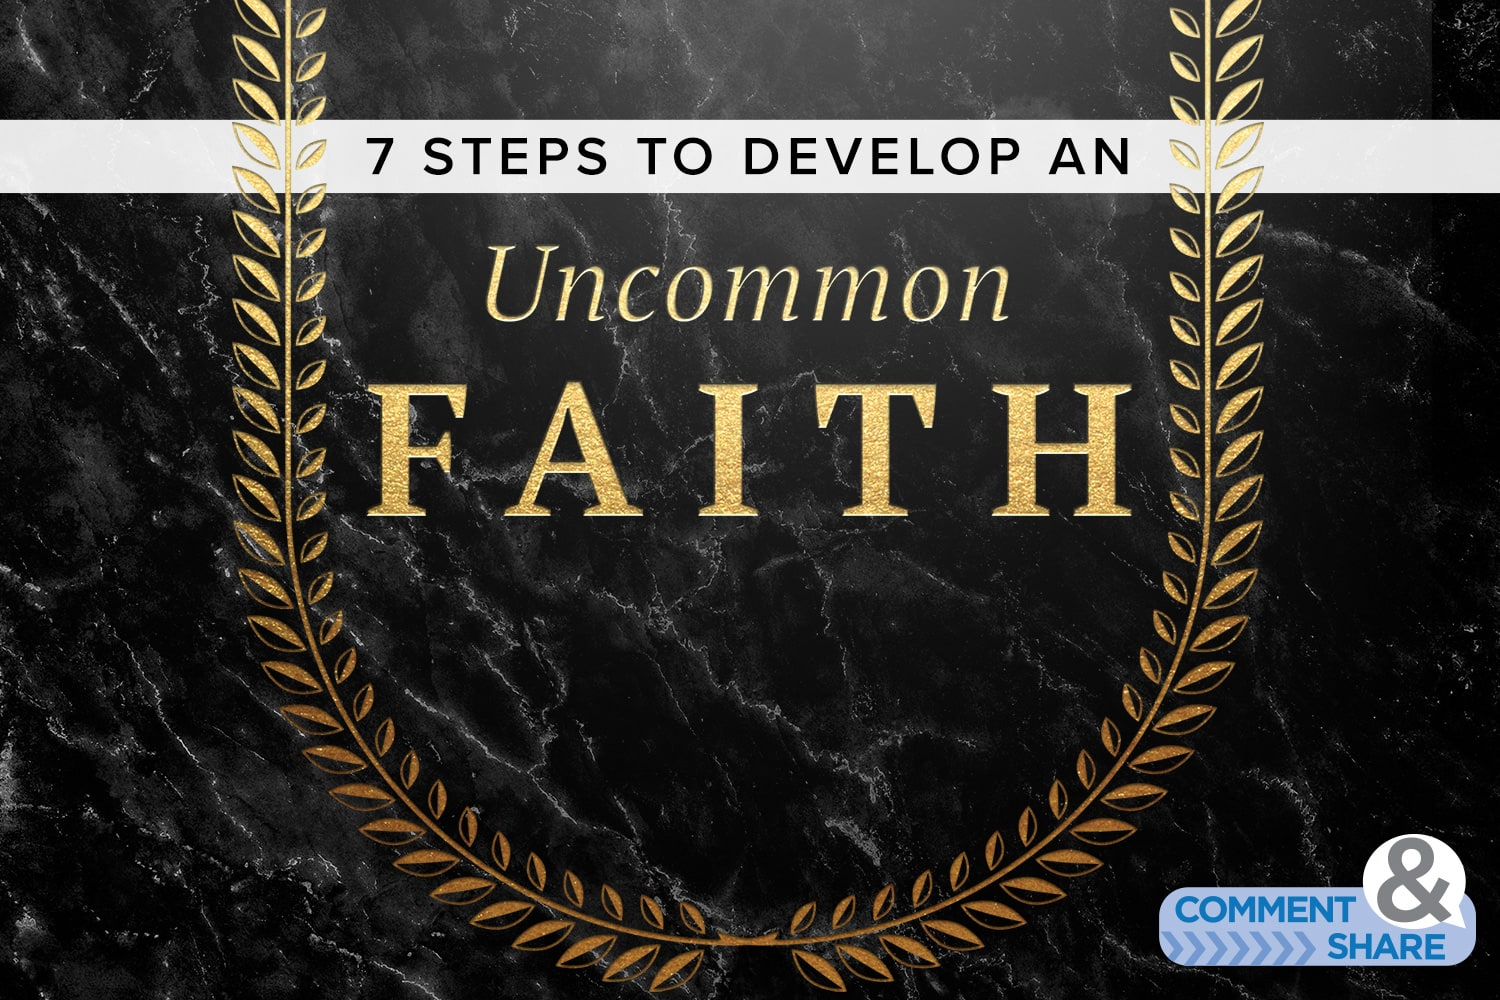 7 Steps to Develop An Uncommon Faith